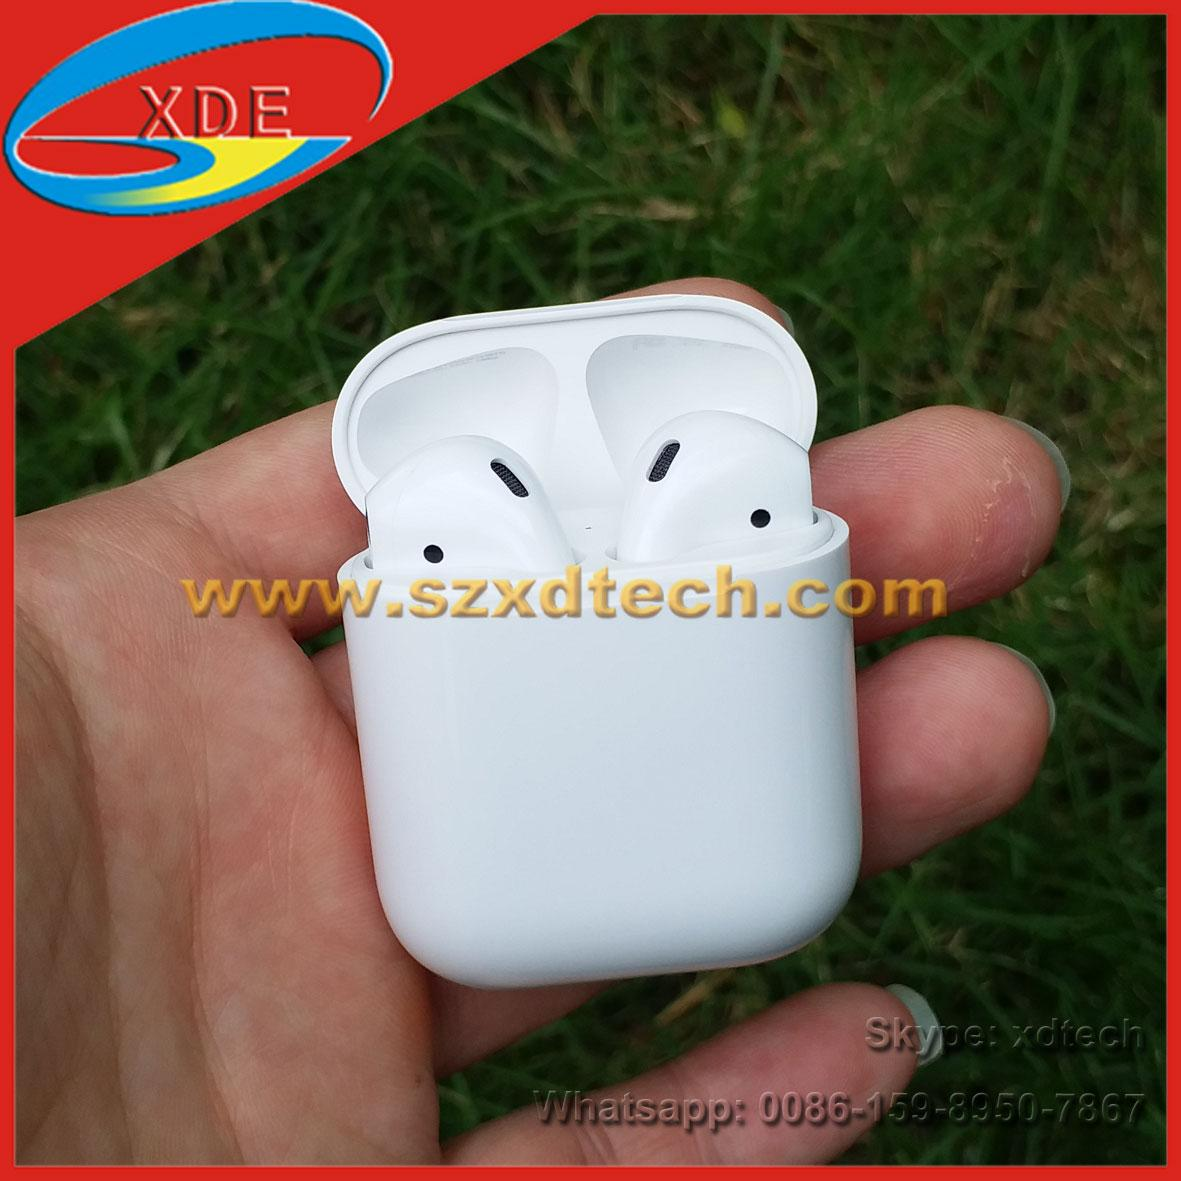 Best Quality Apple Airpod 2 Clone 1:1 Quality 1:1 Size Wireless Charger